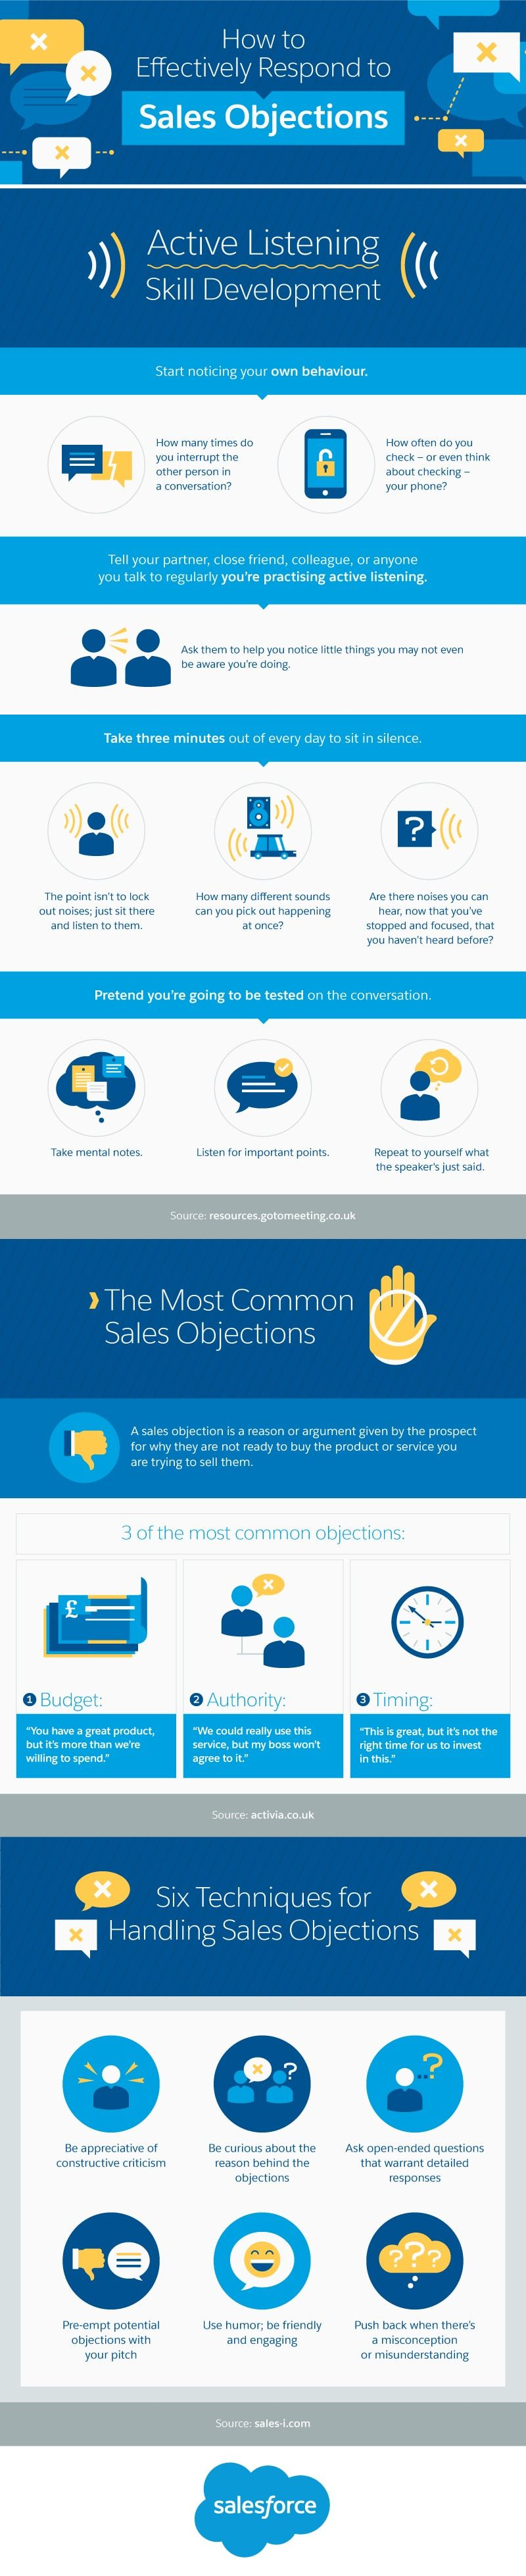 How To Effectively Respond To Sales Objections #Infographic